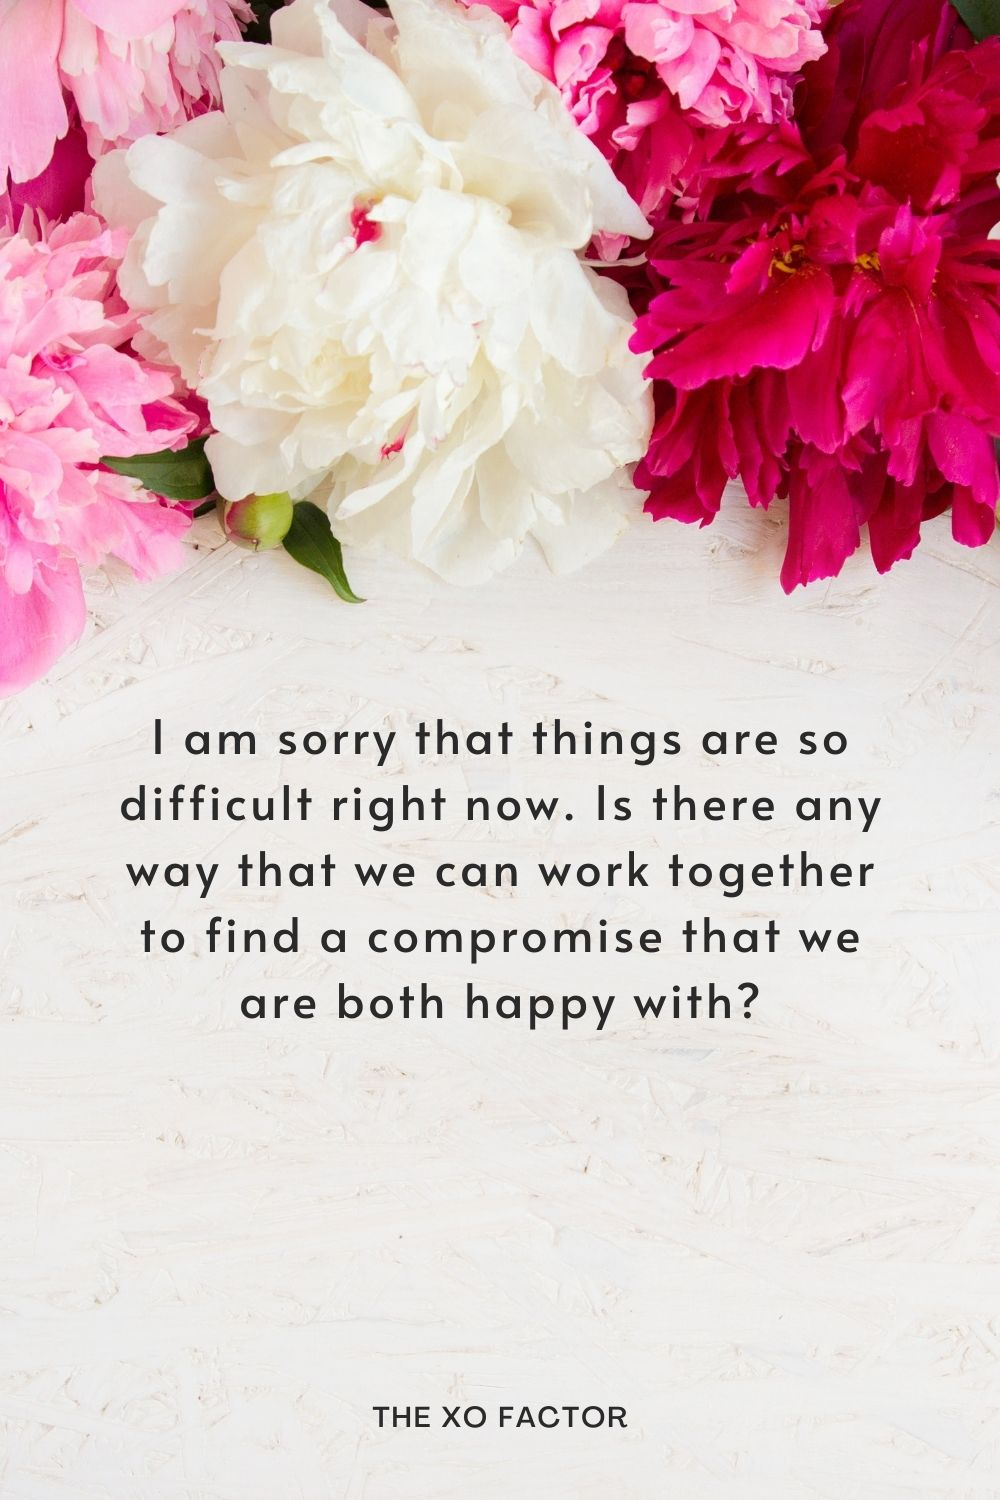 I am sorry that things are so difficult right now. Is there any way that we can work together to find a compromise that we are both happy with?